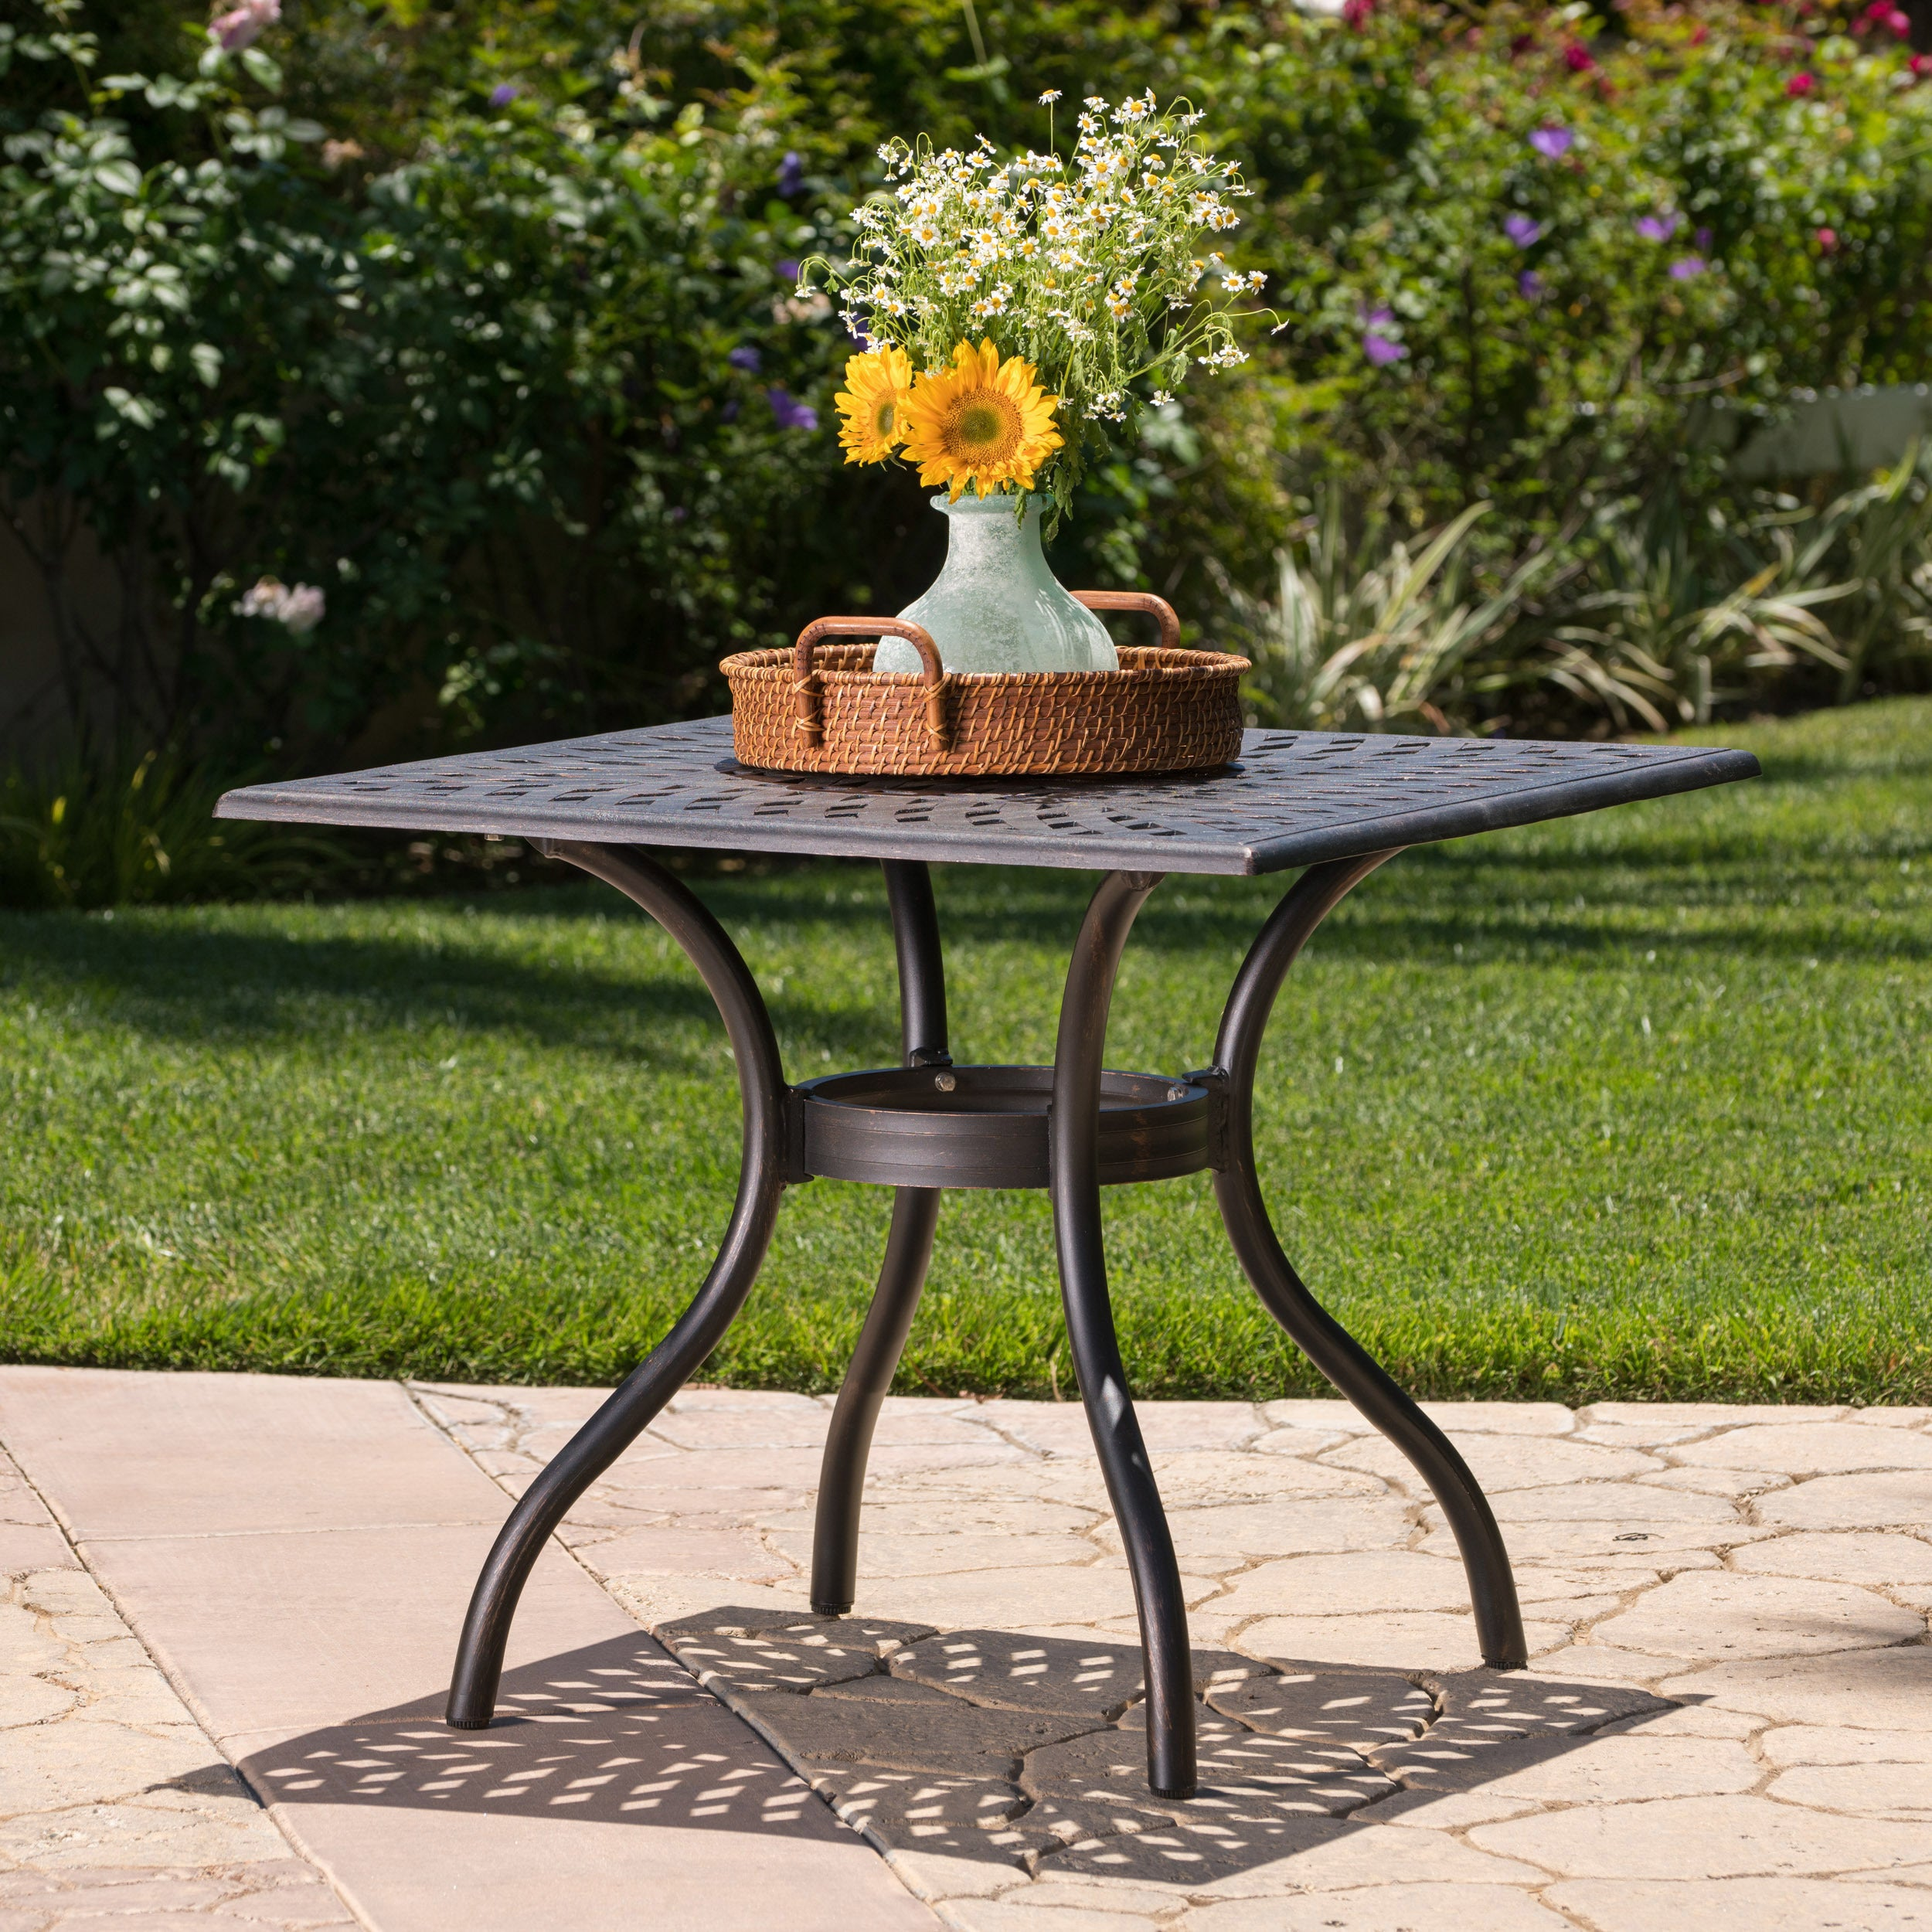 Austin Outdoor Cast Aluminum Square Dining Table With Umbrella Hole By